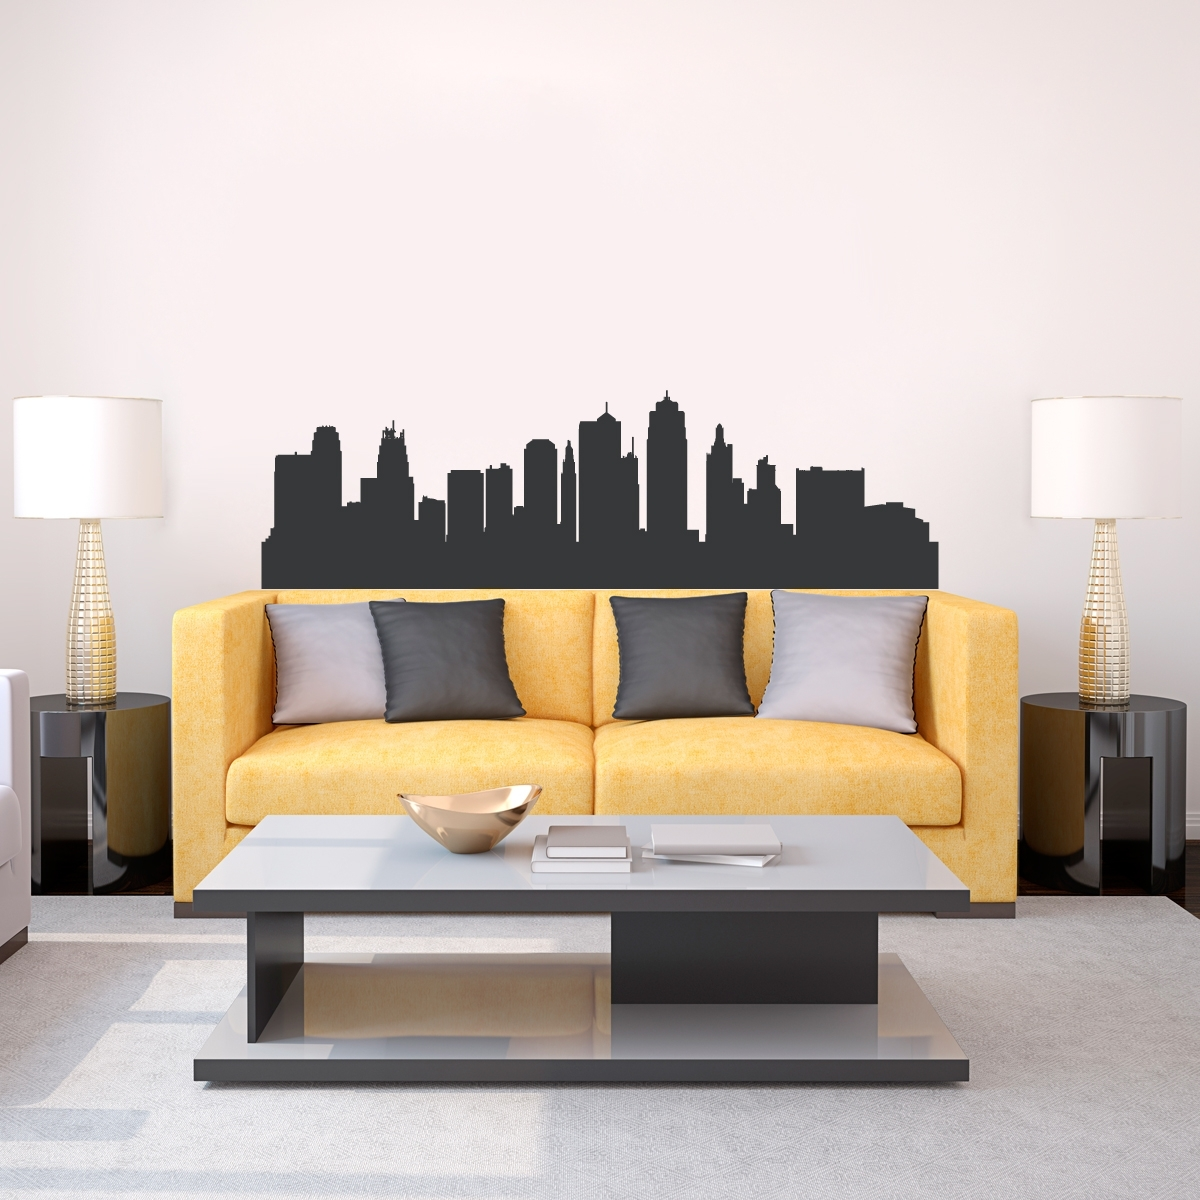 Kansas City Missouri Skyline Vinyl Wall Decal Sticker Intended For Newest Kansas City Wall Art (Gallery 13 of 20)